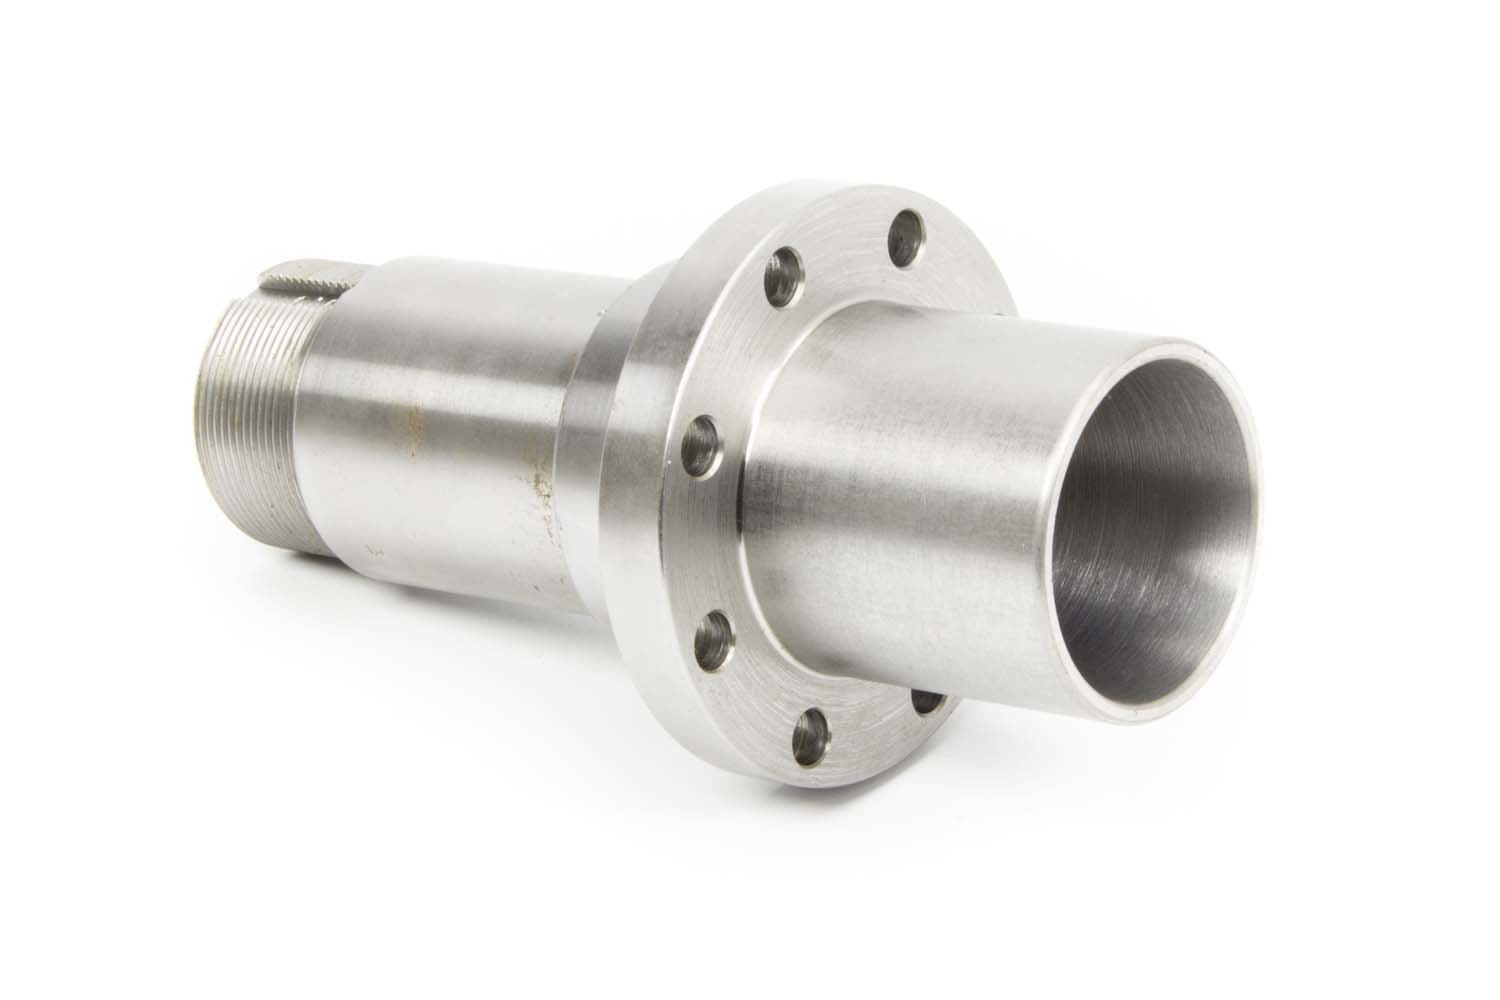 2in GN 8 Bolt Spindle 5X5 cambered snout 1/2